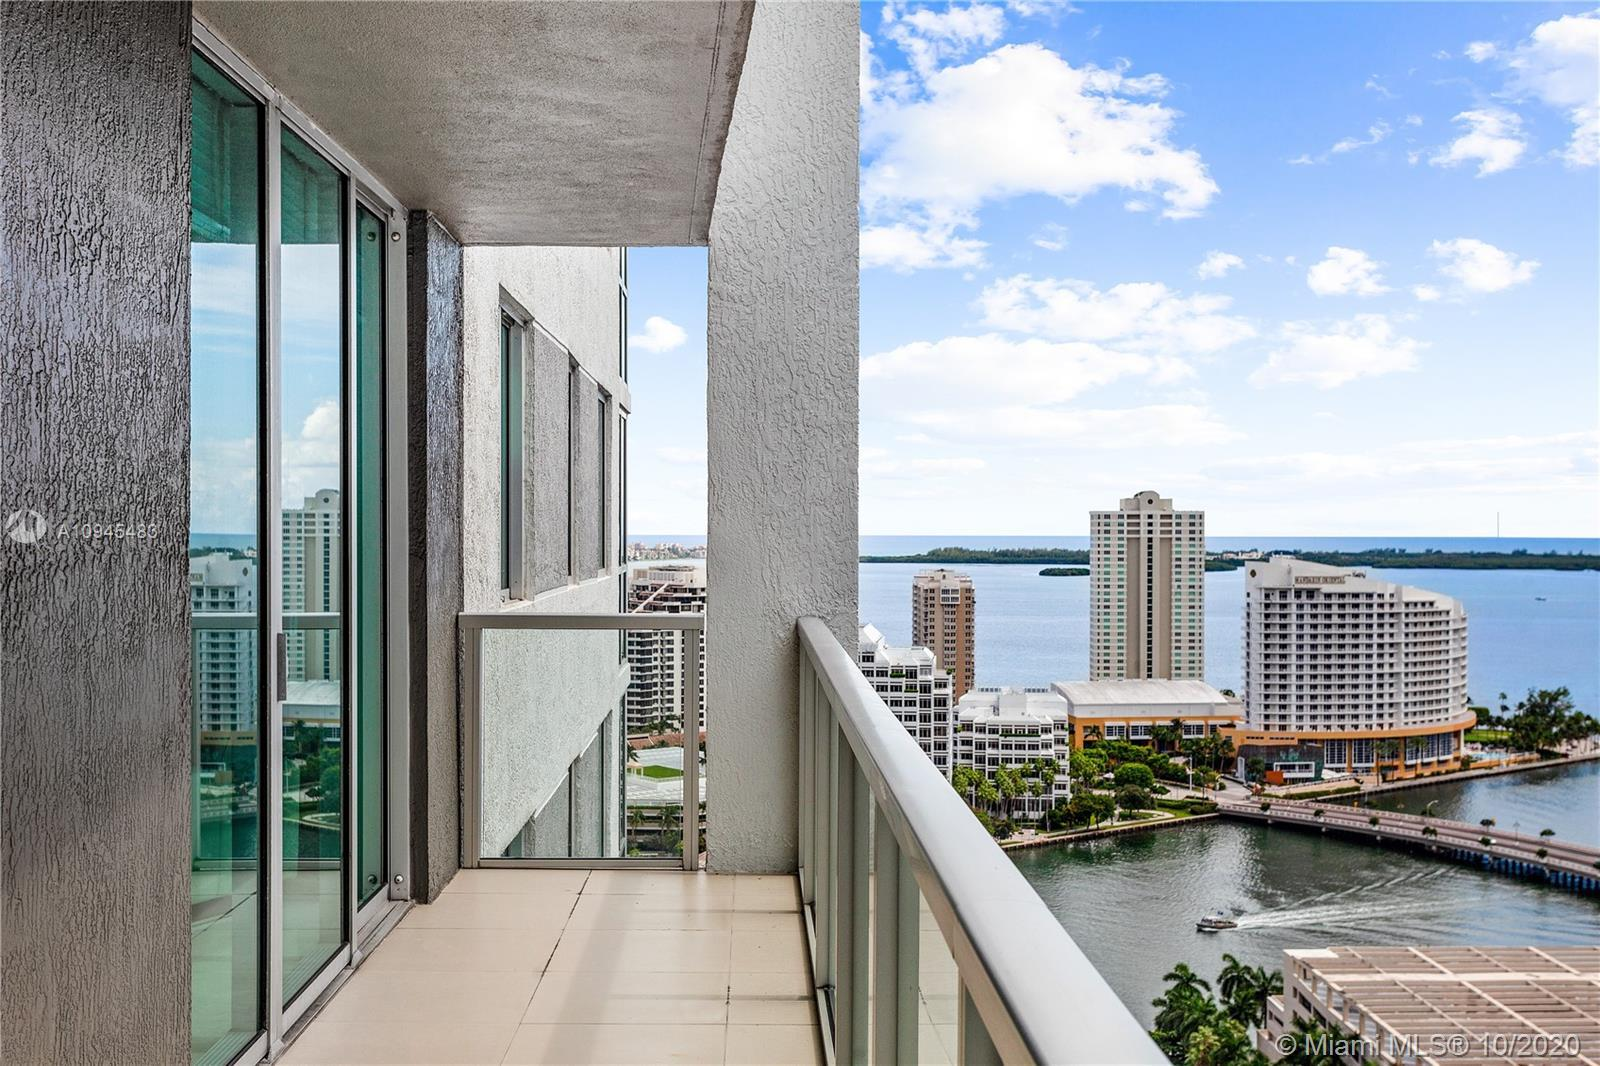 BEAUTIFULLY FURNISHED WITH MANY UPGRADES. AVERY LARGE UNIT AND SEPARATE WALK-IN CLOSET. THIS LUXURY